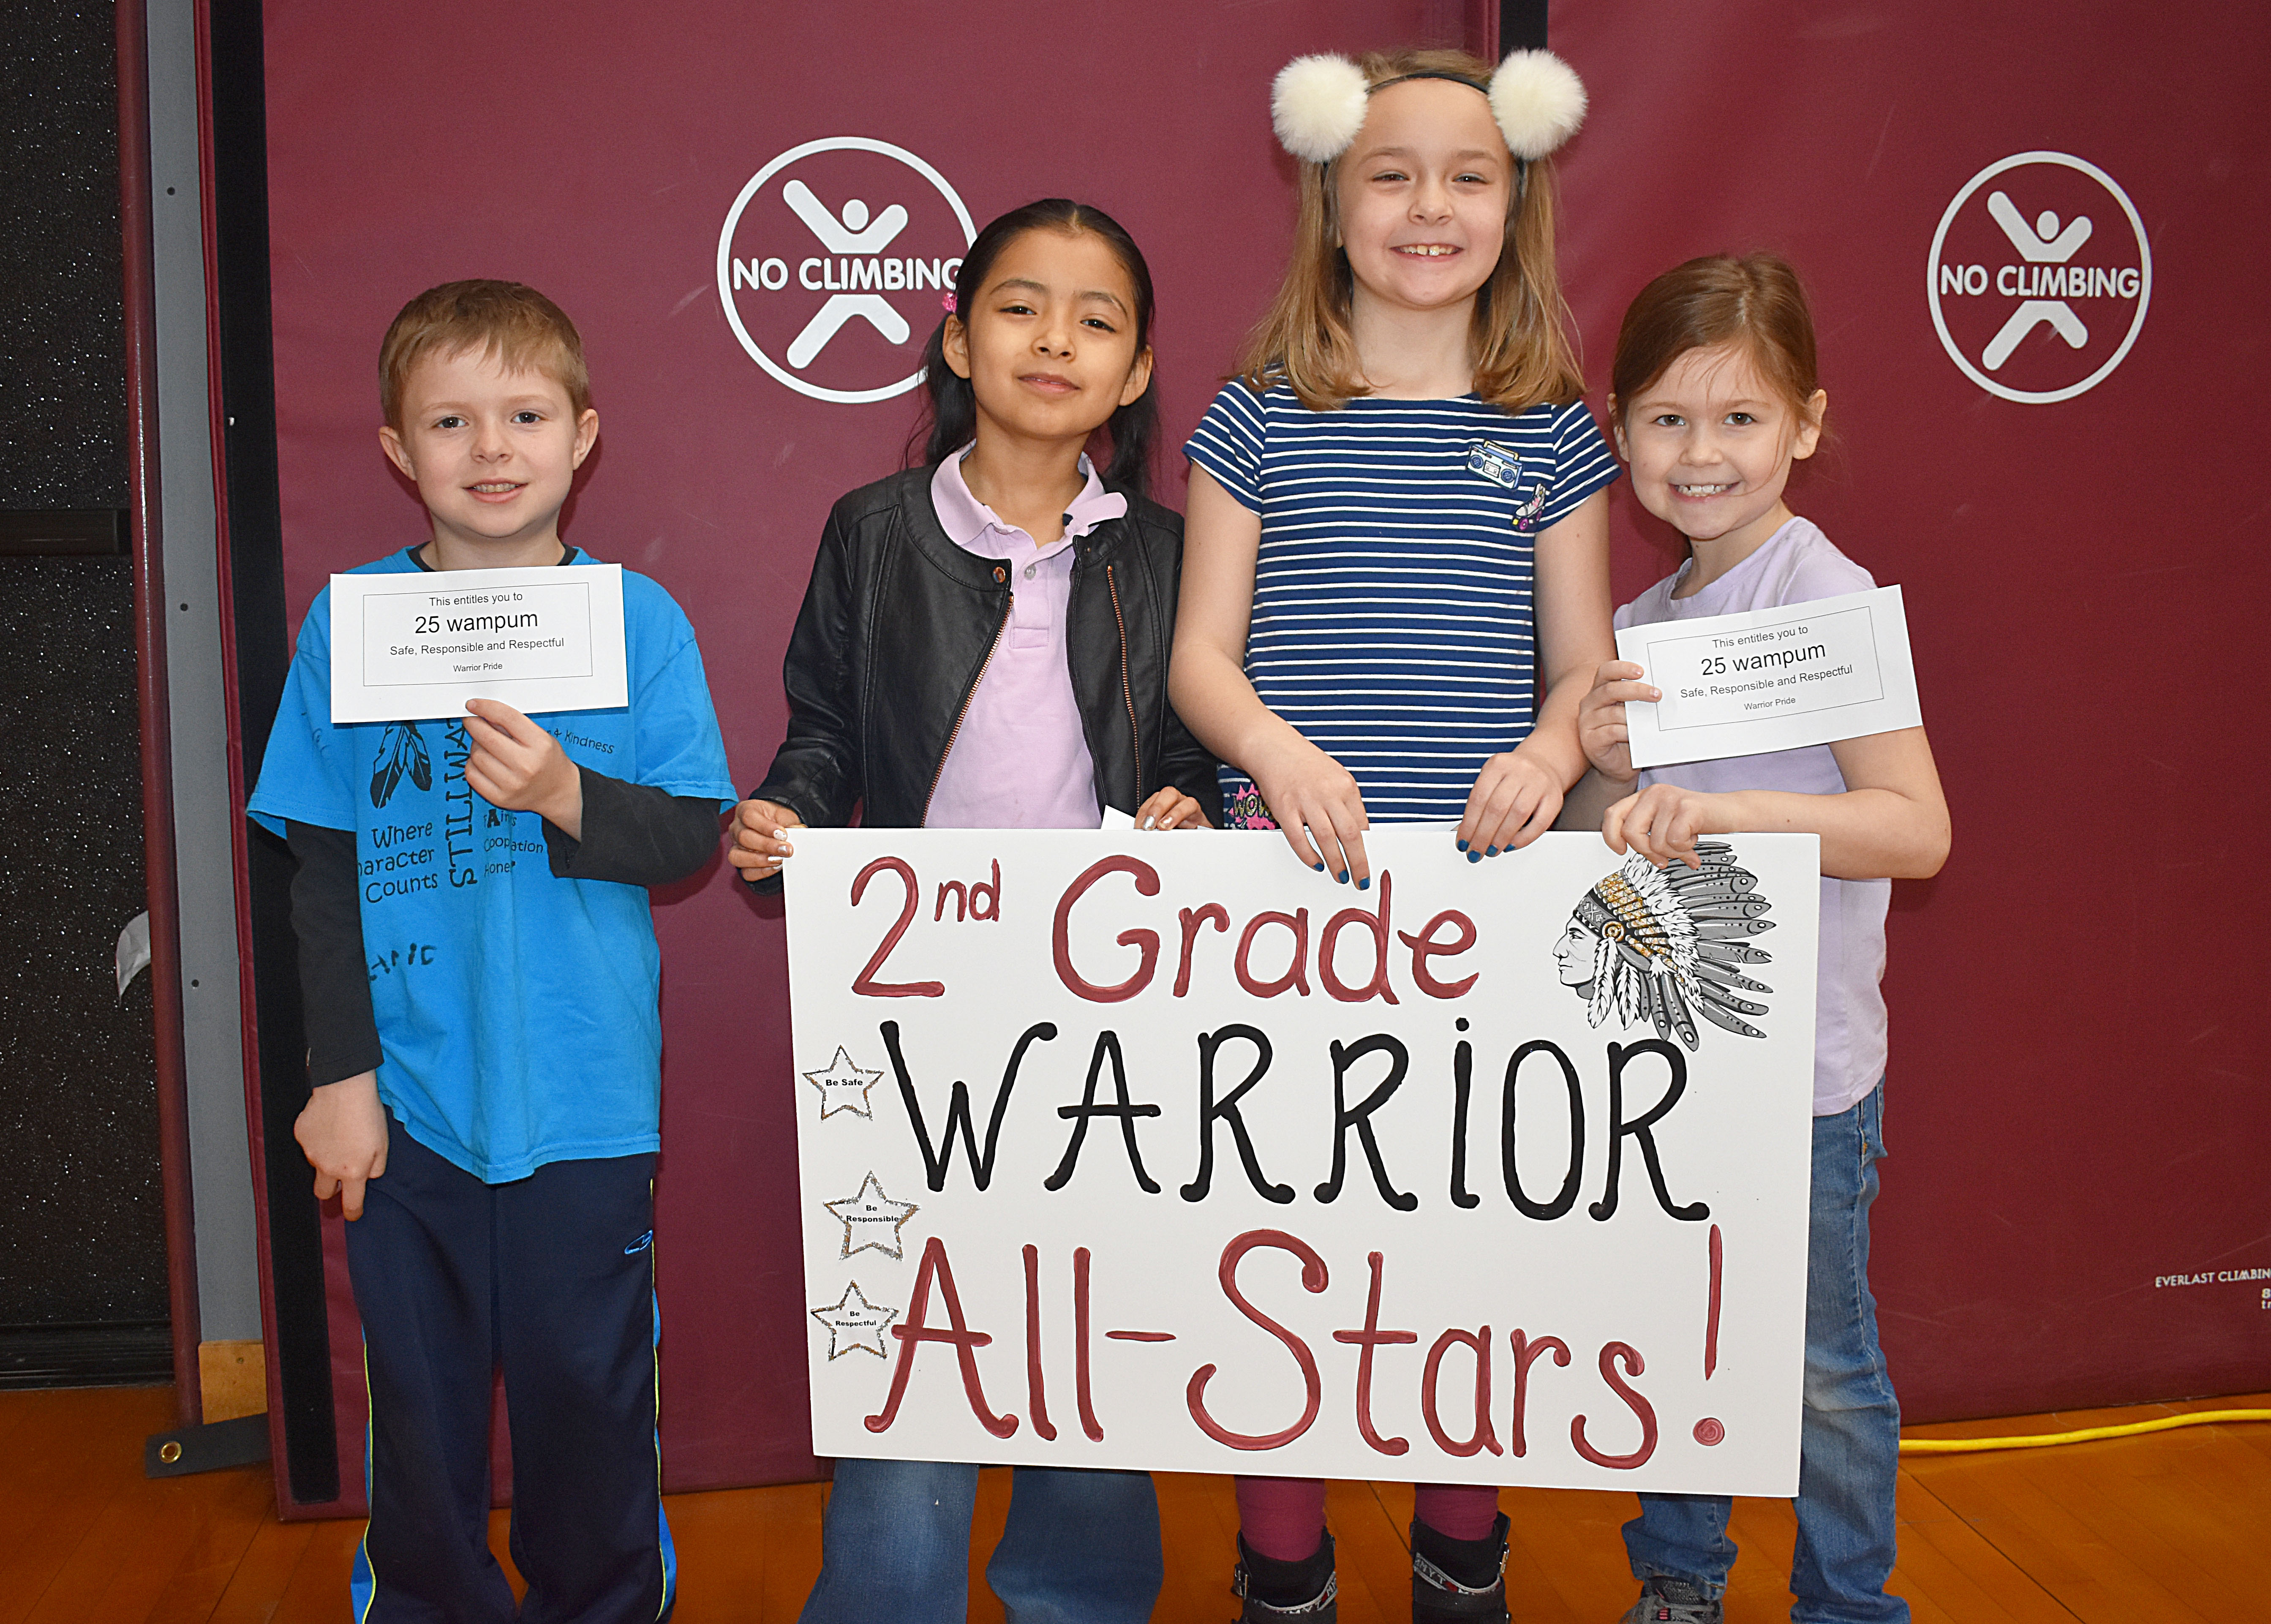 Group of second grade students gathered with second grade sign